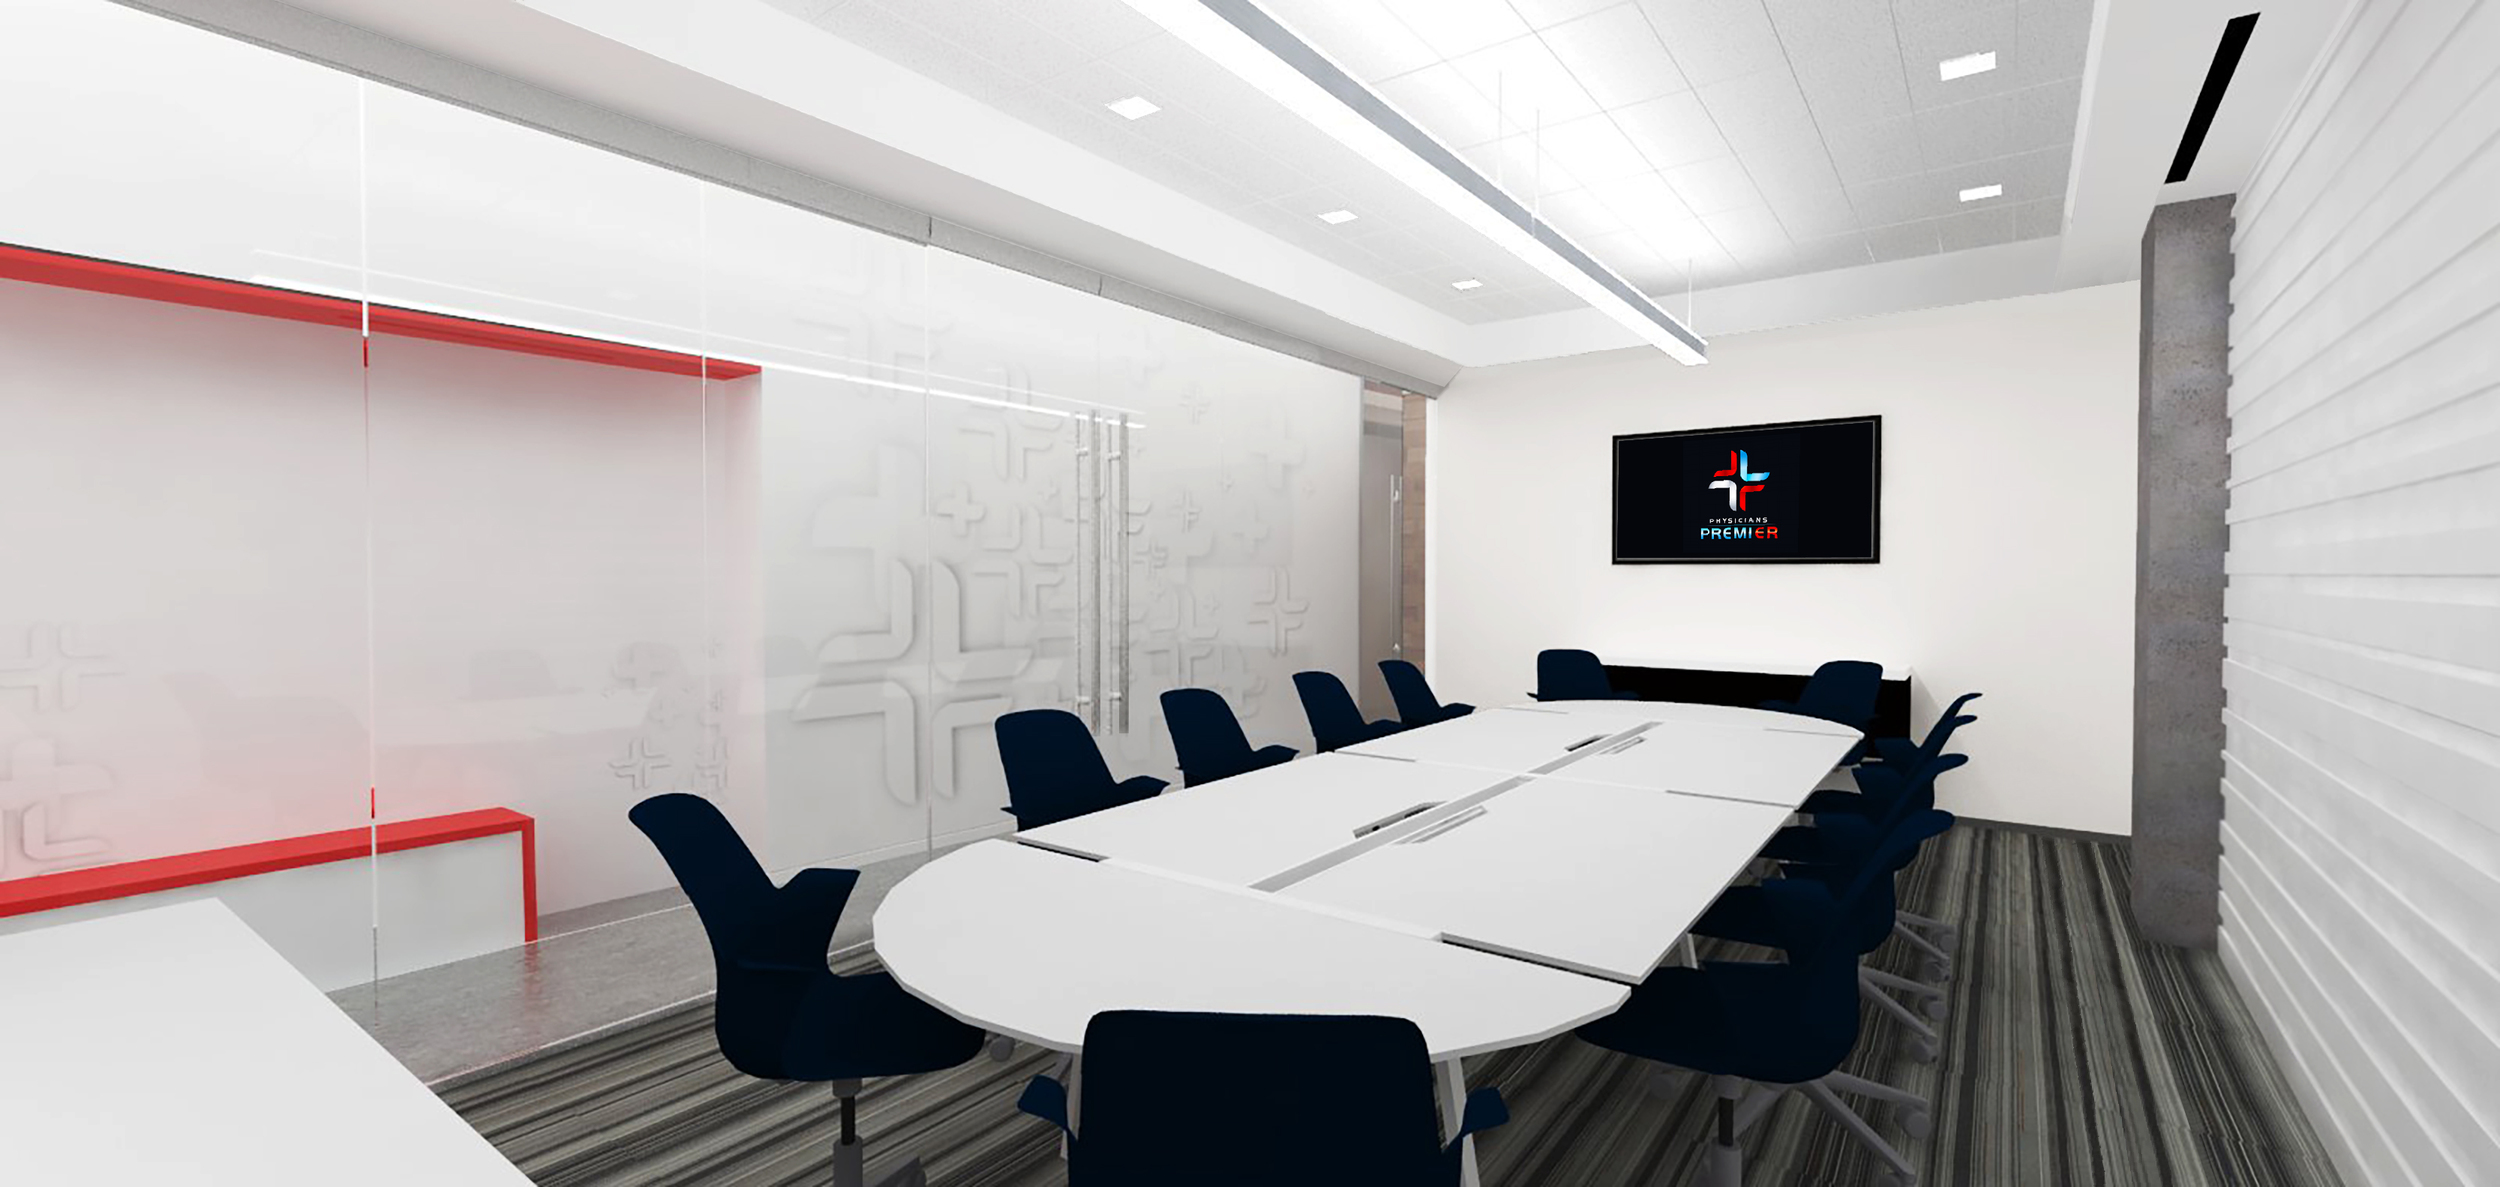 DRAFT - Conference Room.jpg